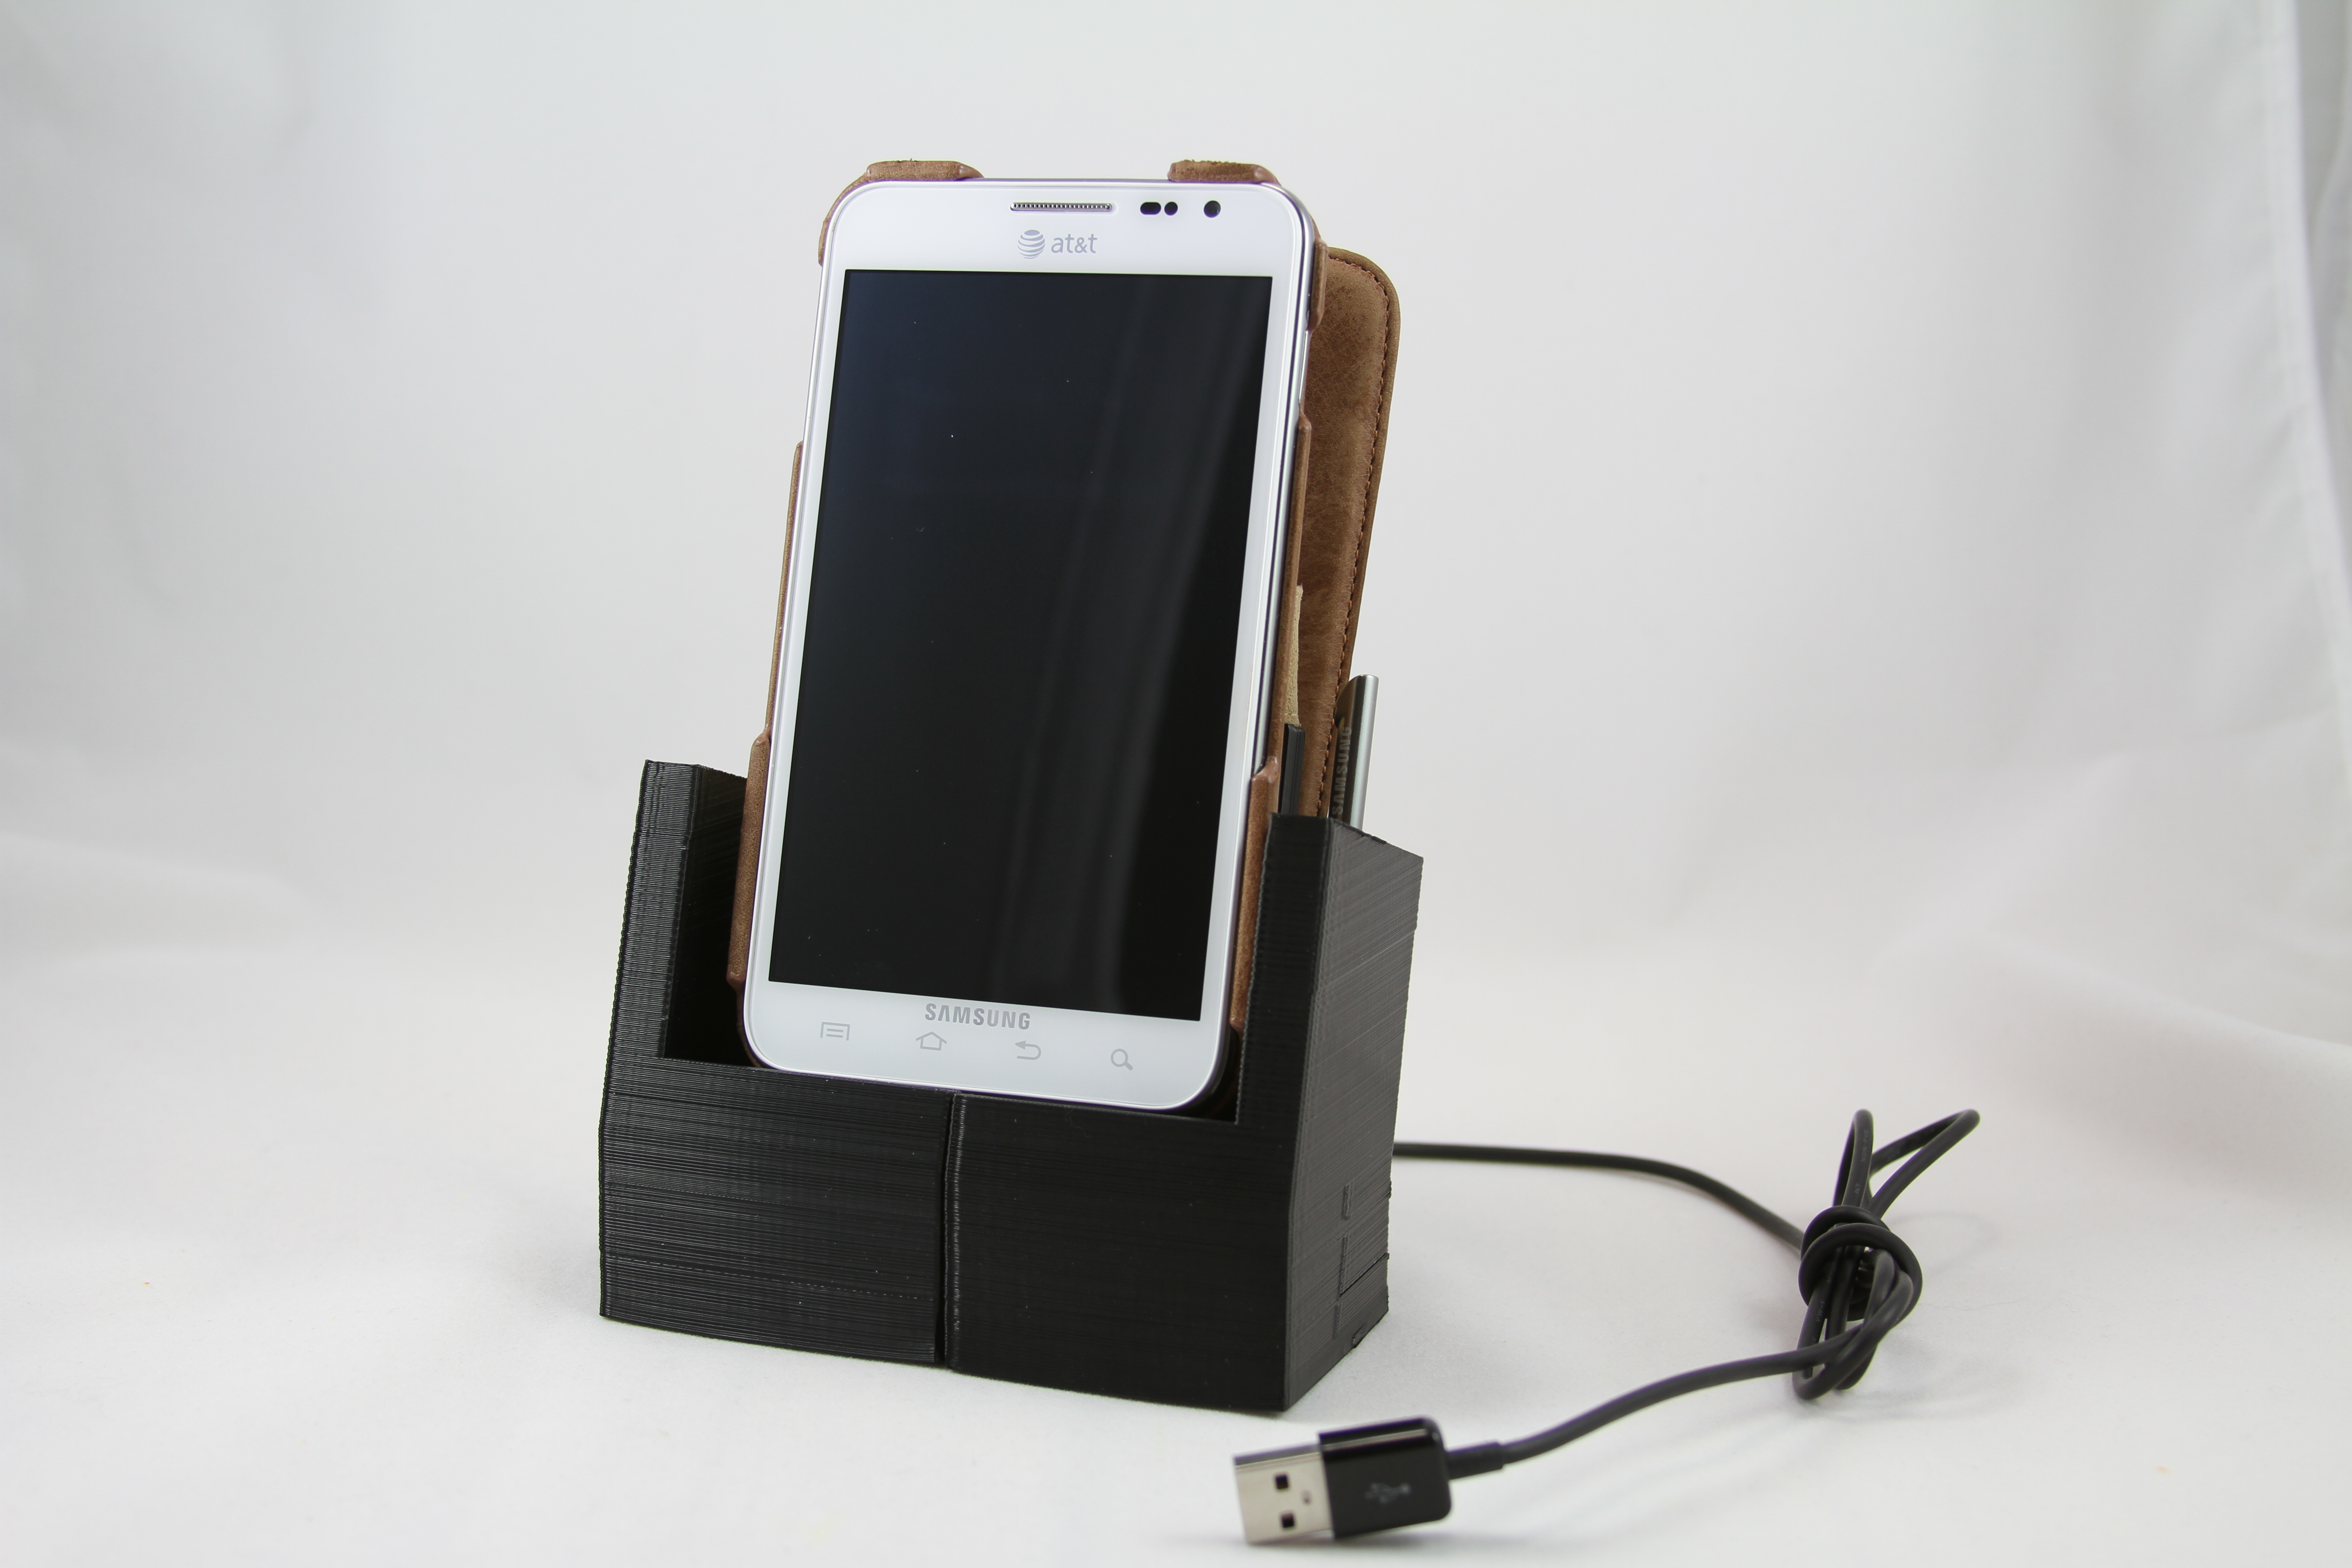 Galaxy Note Case-able Dock